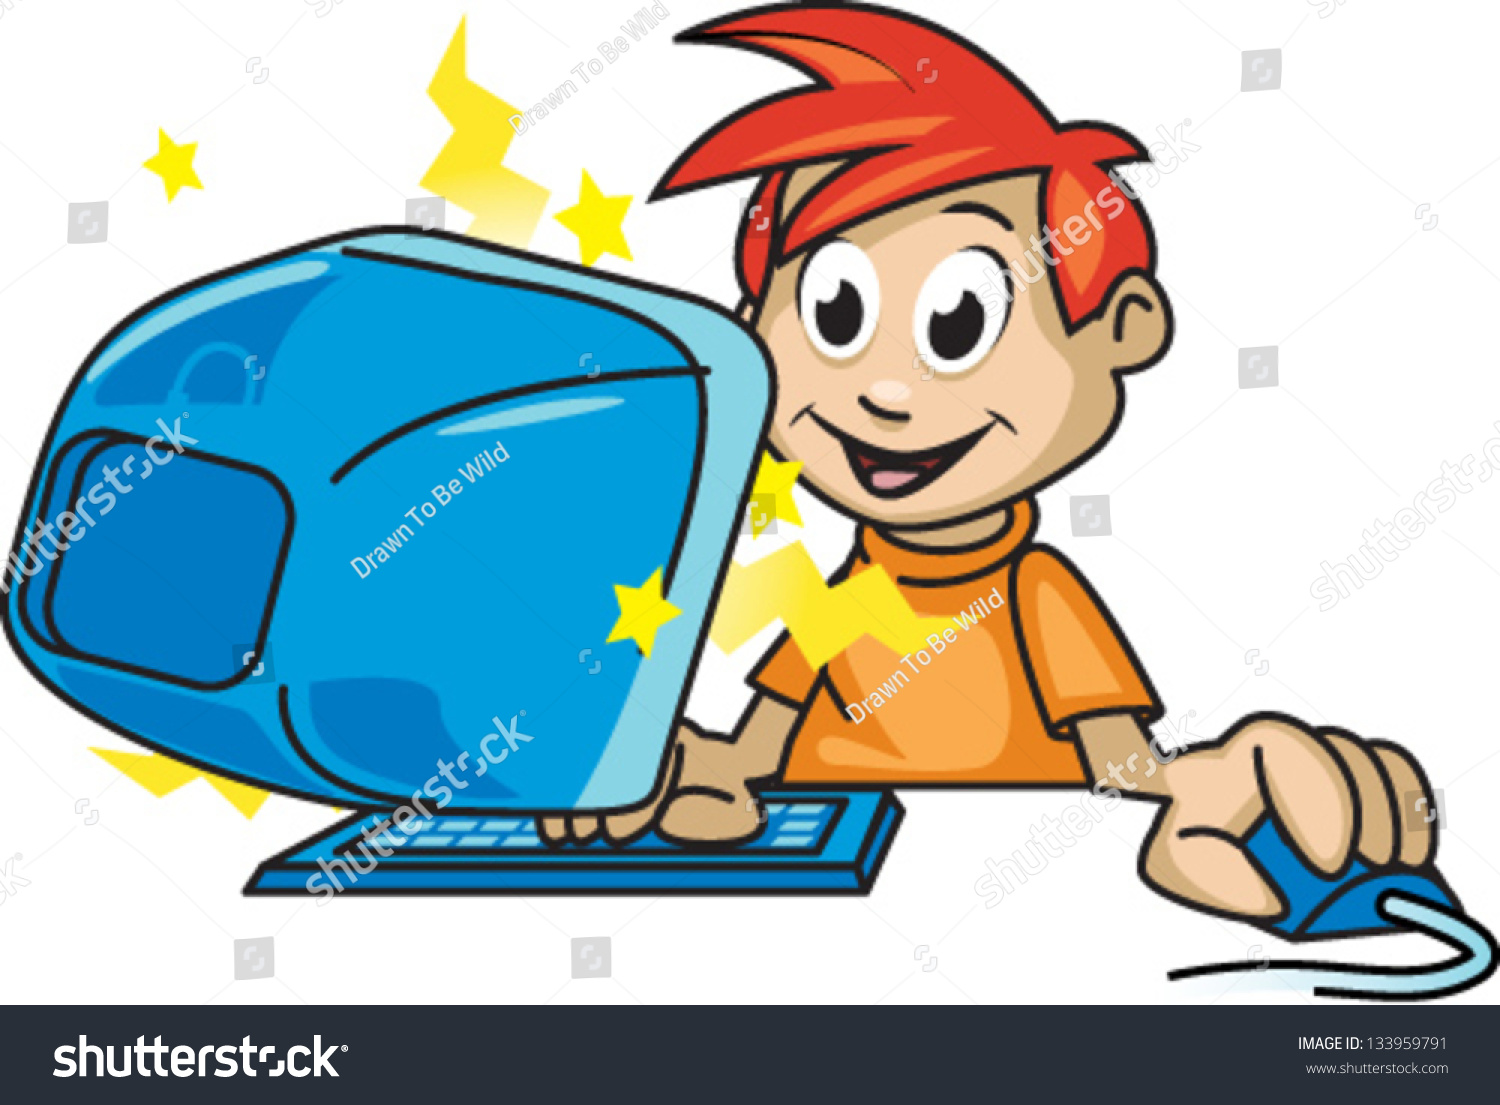 children spend too much time playing computer games essay With an average of 10 hours and 45 minutes a day, kids spending too much time with media - online and offline - robs them of real world experiences and may result in.